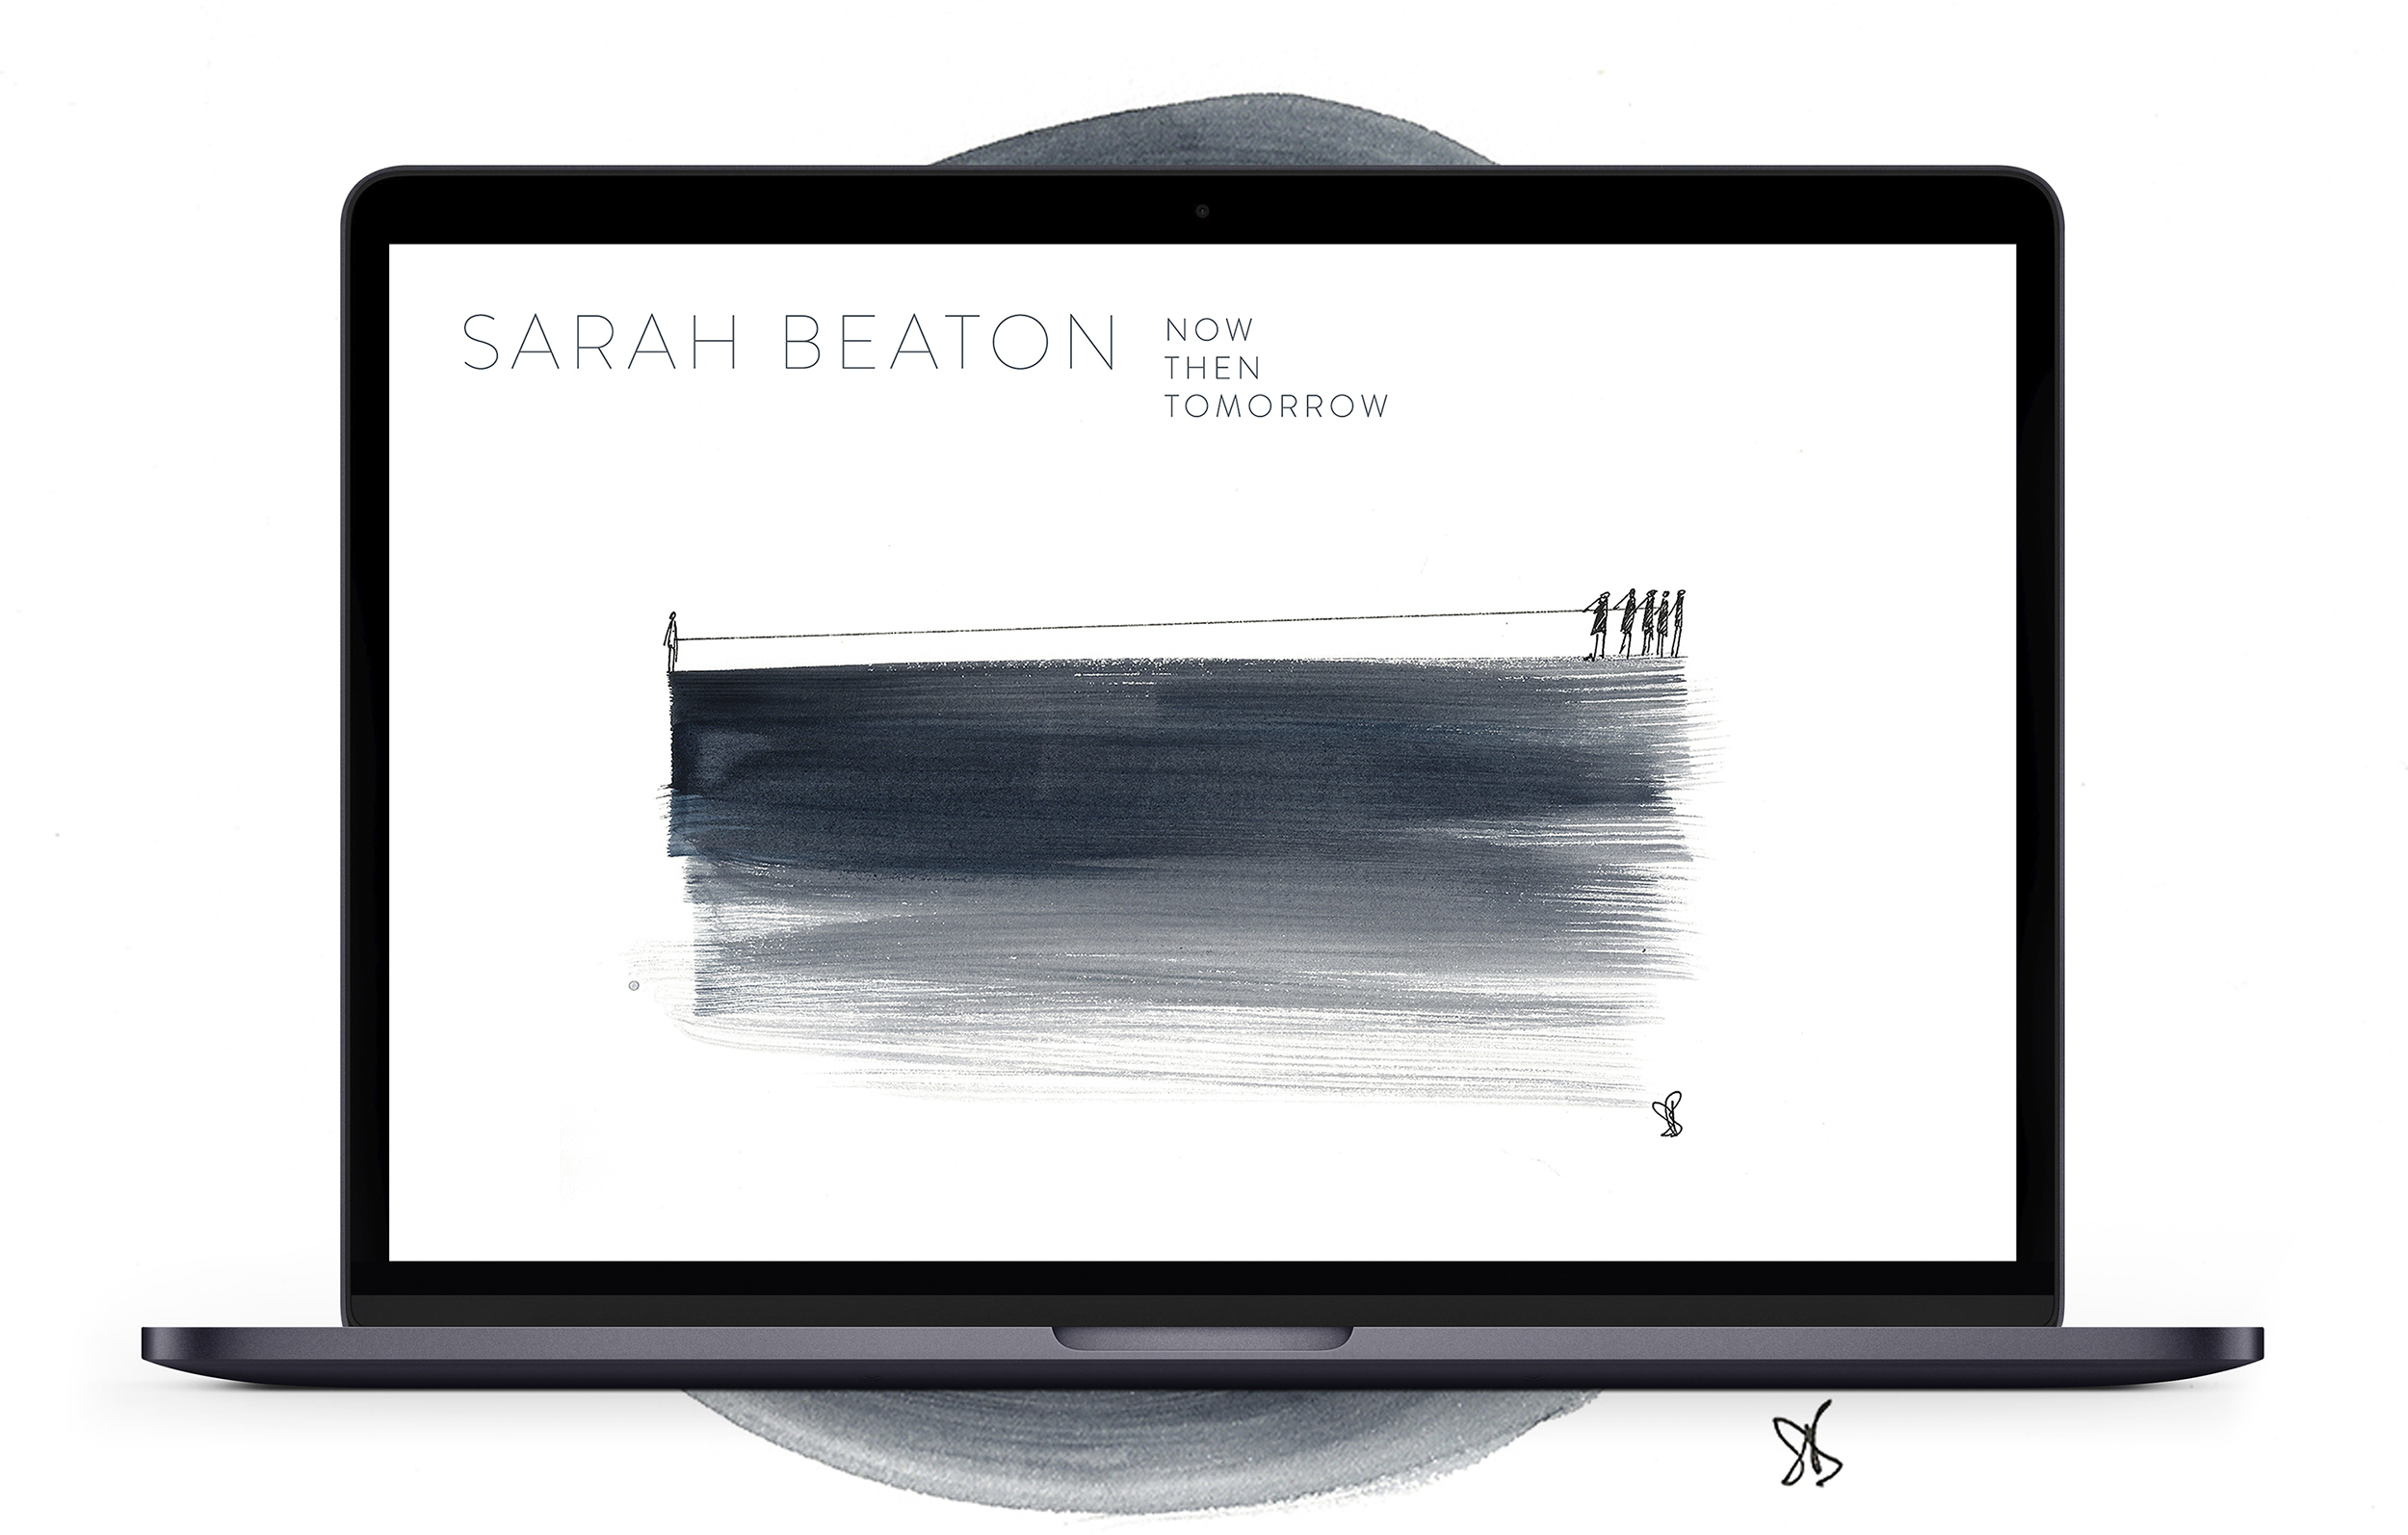 Example of Sarah Beaton's website designed and developed by Talking Horse